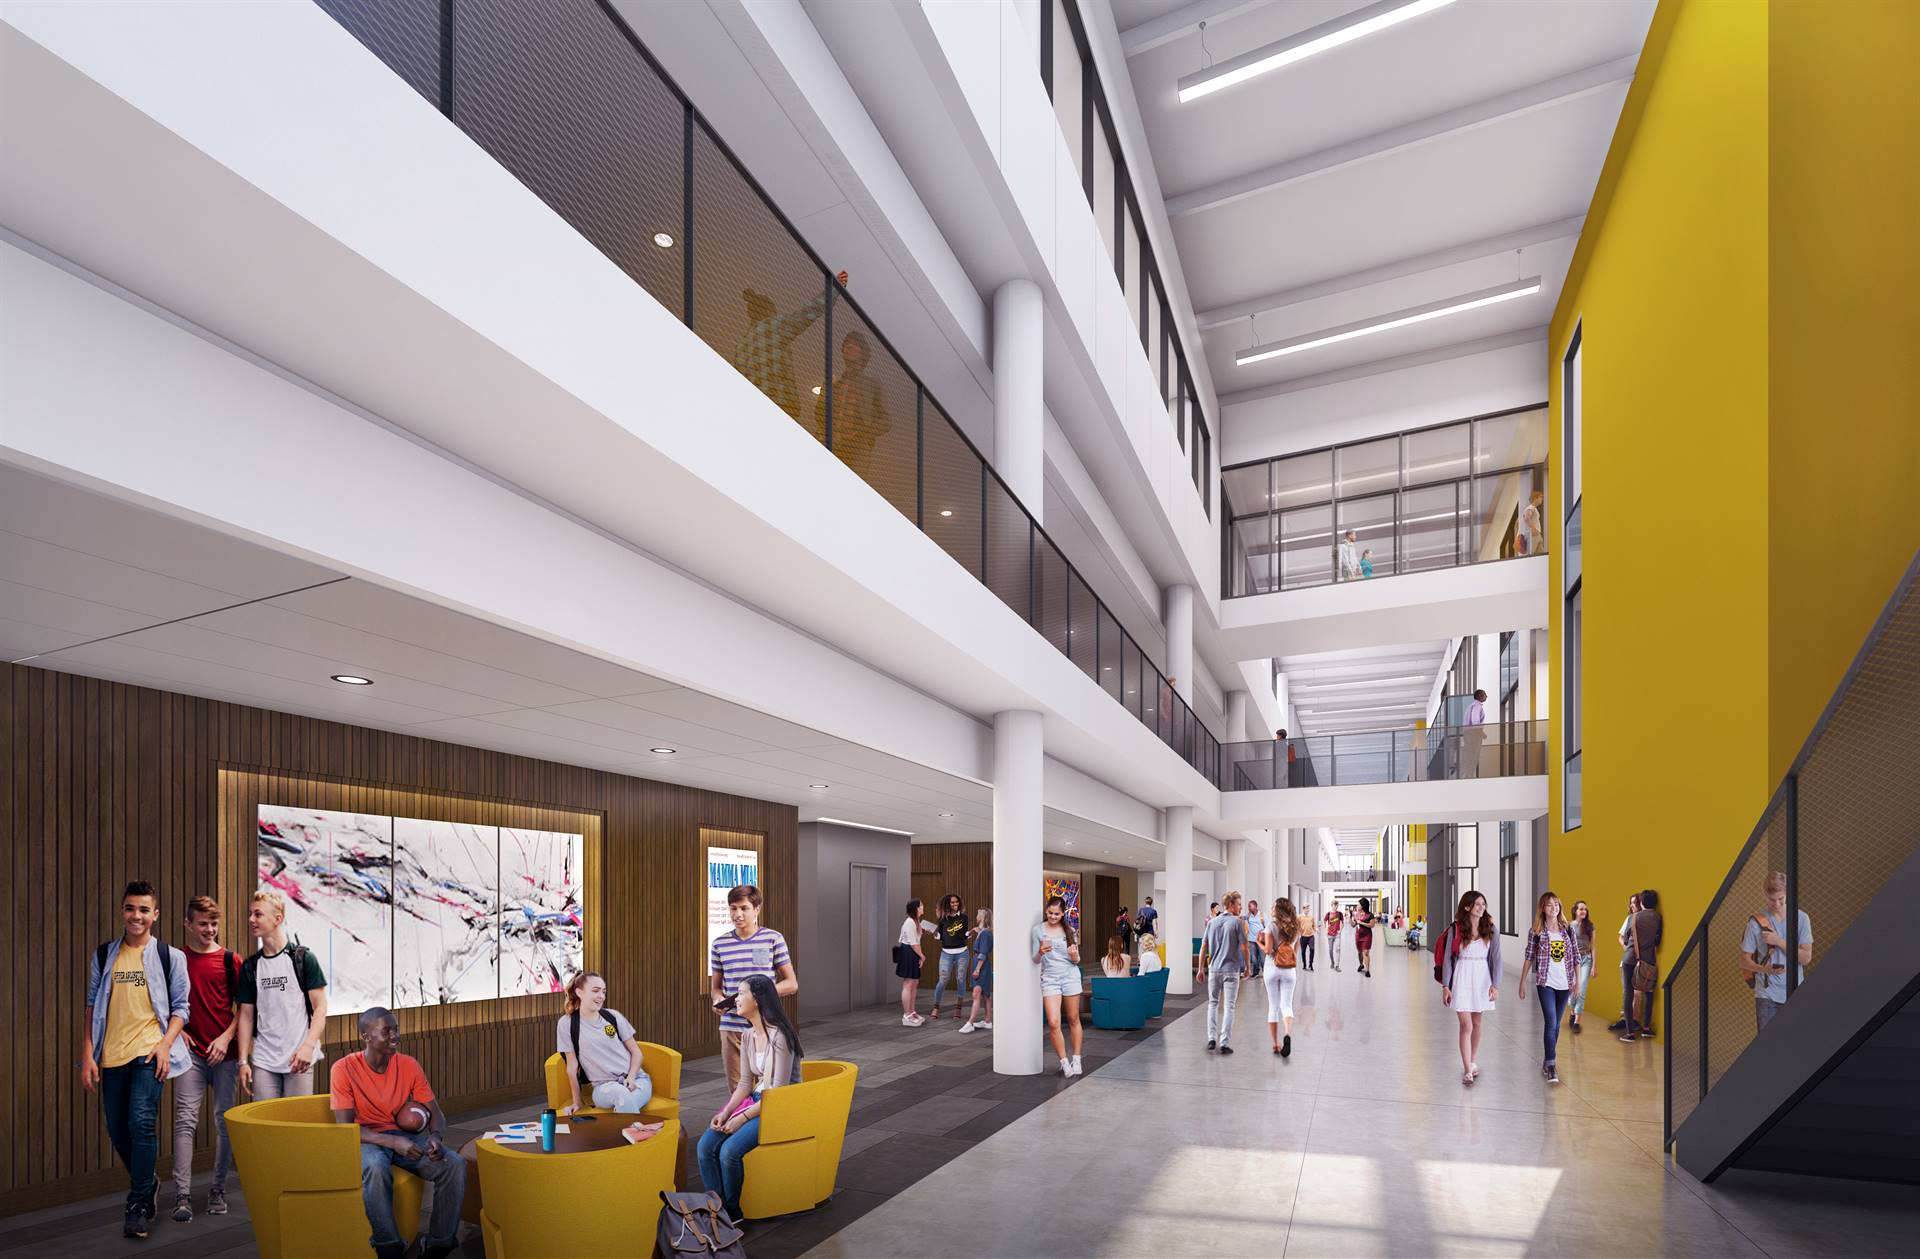 A view of Golden Bear Boulevard inside the new school